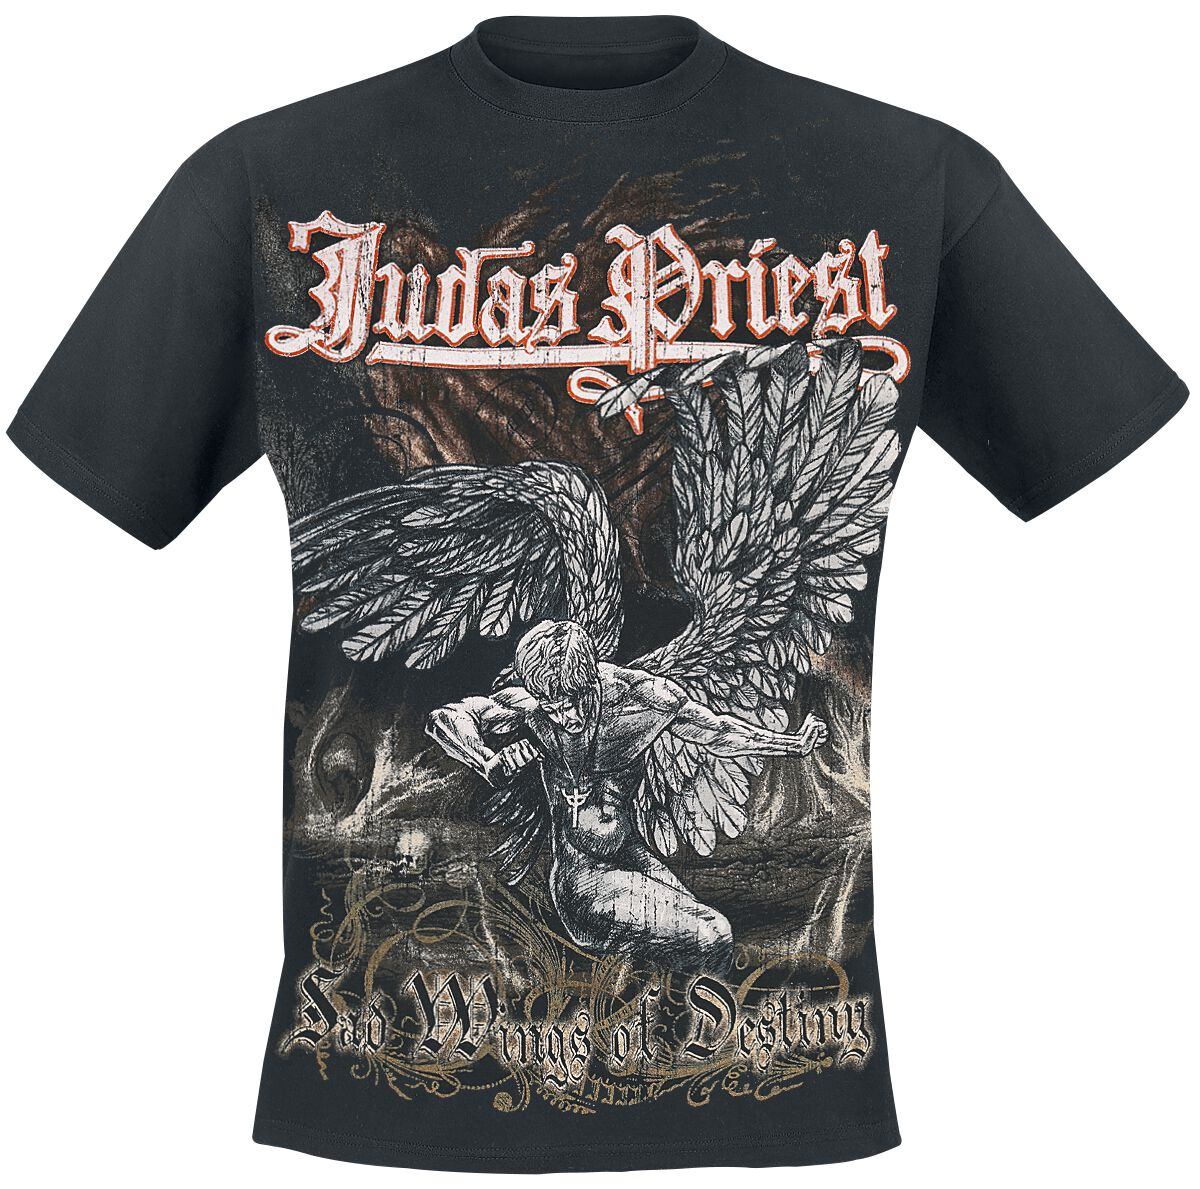 Image of   Judas Priest Sad Wings T-Shirt sort